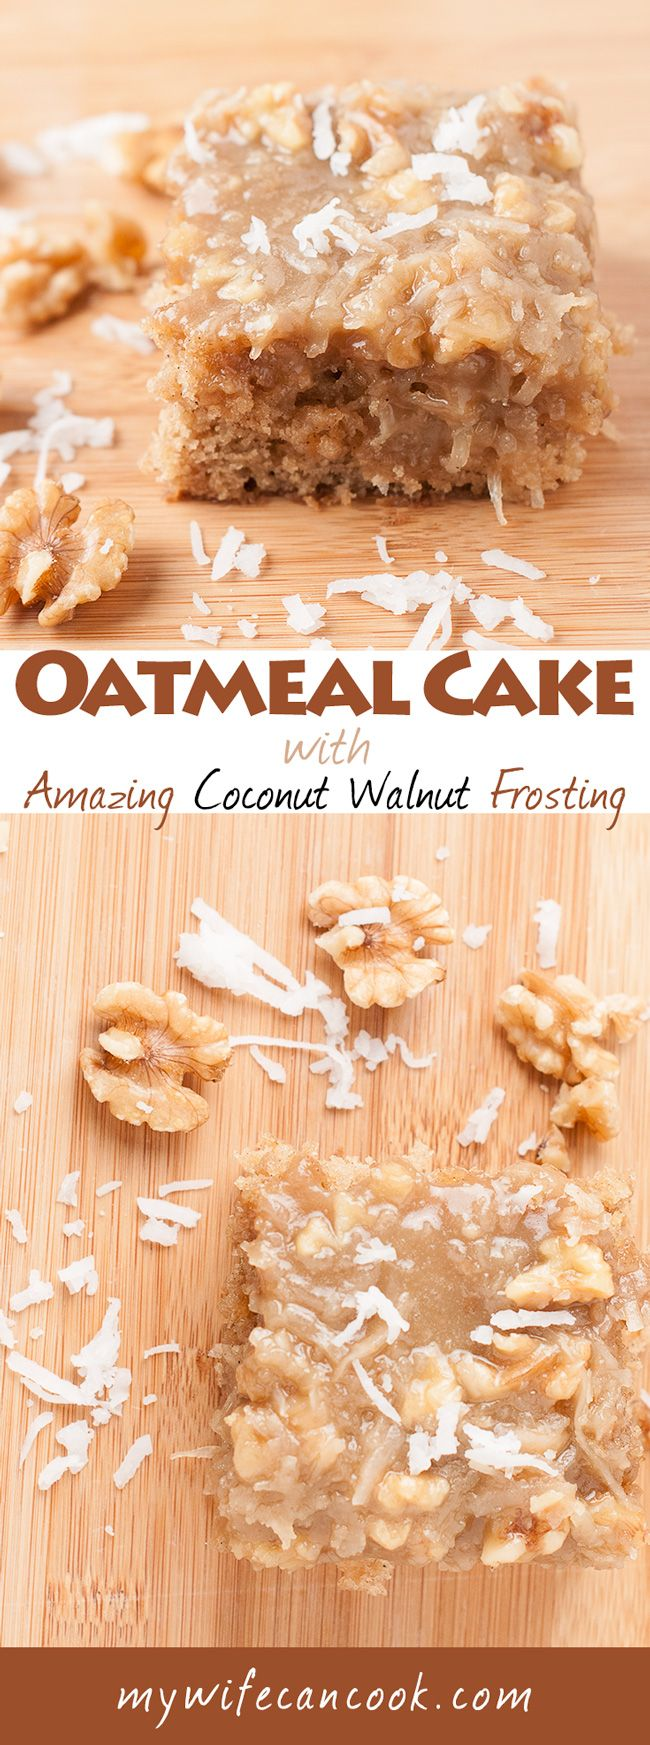 Easy Oatmeal Cake with Amazing Coconut Walnut Frosting. This cake was love at first bite. Moist and delicious oatmeal cake topped with the best cake frosting imaginable: coconut and chopped walnuts in an icing reminiscent of what you'd find on traditional German Chocolate Cake. (icing includes butter, brown sugar, and evaporated milk). Recipe includes tips on making sure your Oatmeal Cake Coconut Walnut icing comes out perfect every time. You'd be foolish not to try this cake, bookmark it…